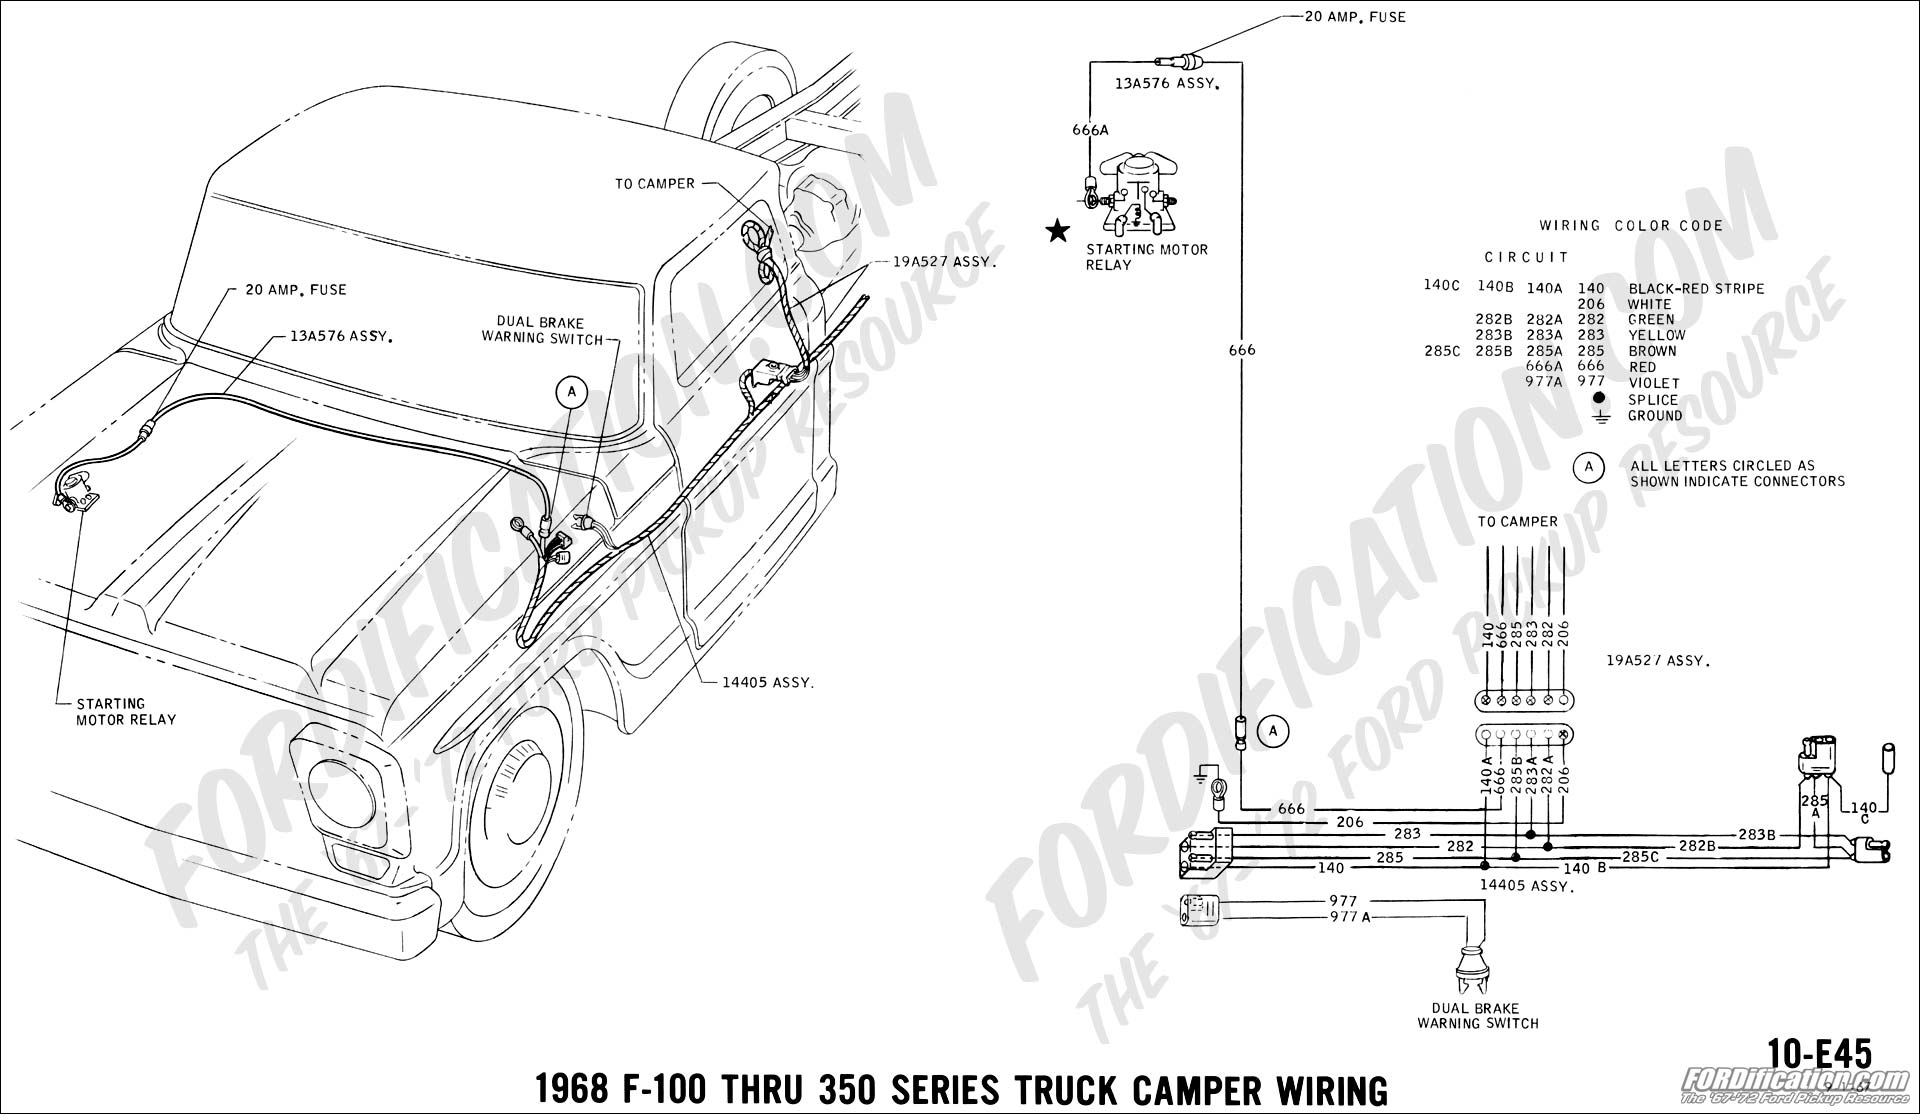 Ford Truck Technical Drawings And Schematics Section H Wiring 1997 Expedition Xlt Diagram4wdtrailer Light Plug 1968 F 100 Thru 350 Camper